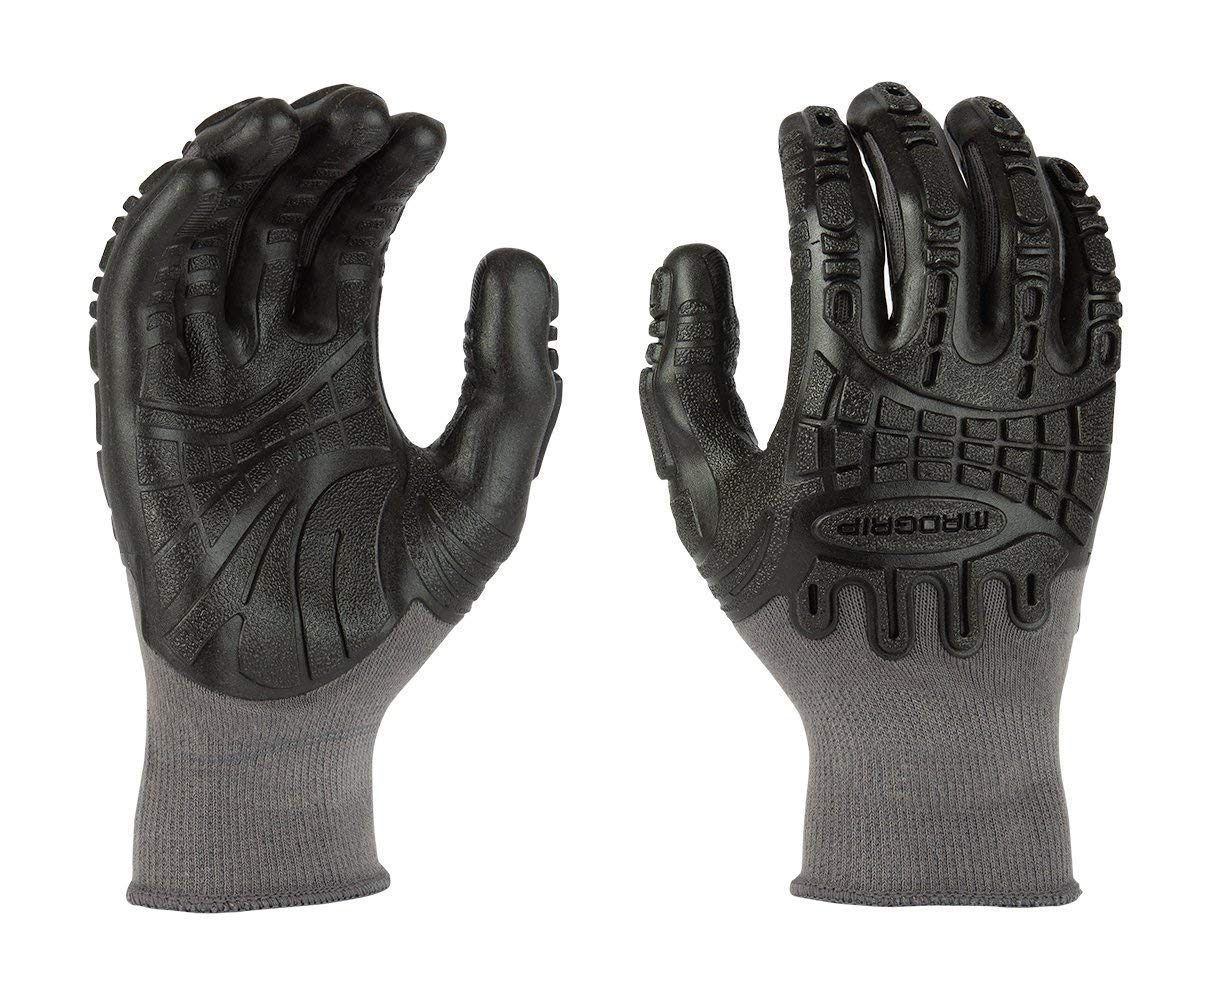 Madgrip F50 Thunderdome TPR Impact Gloves Grblk Large 3 Pair